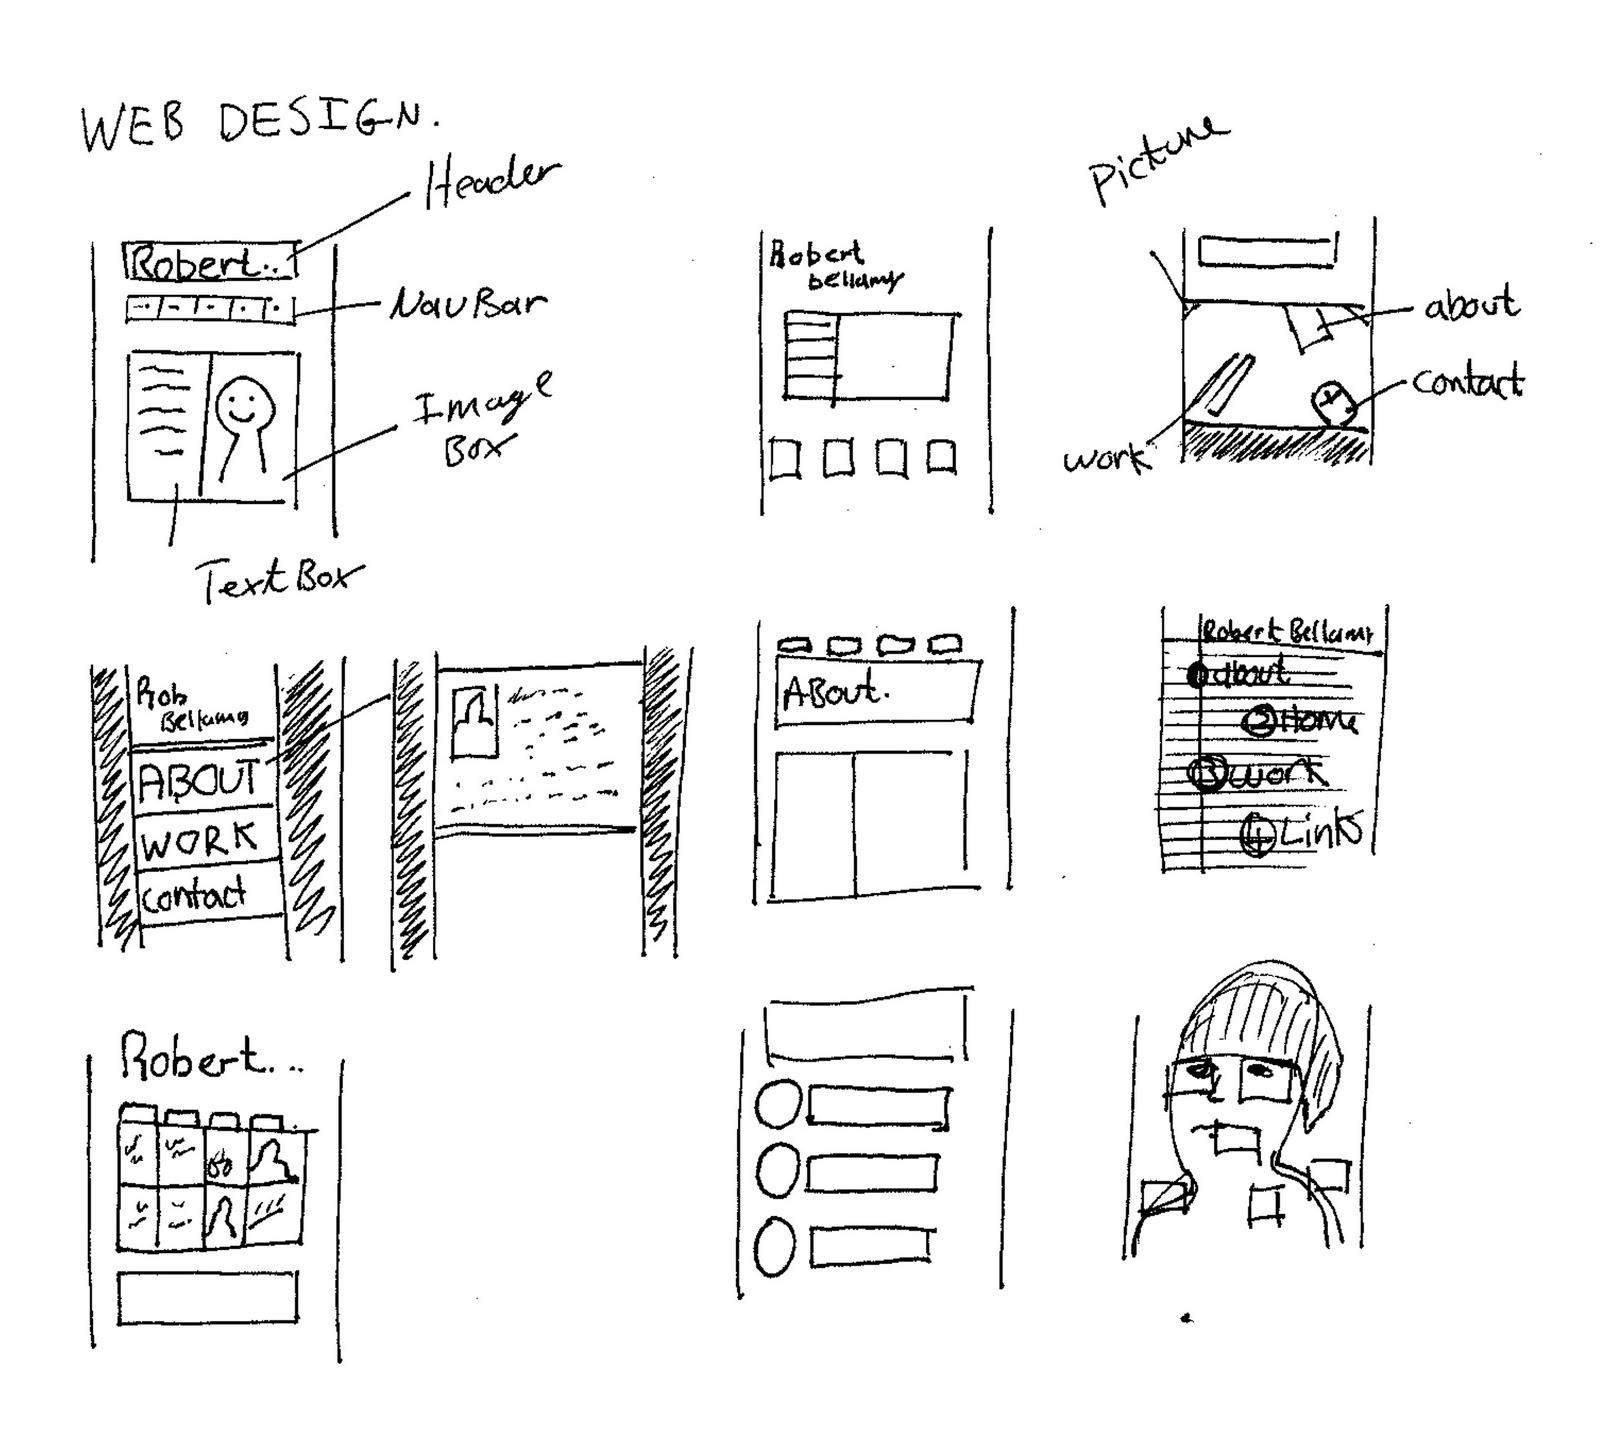 Robert Bellamy: Web Design layout ideas